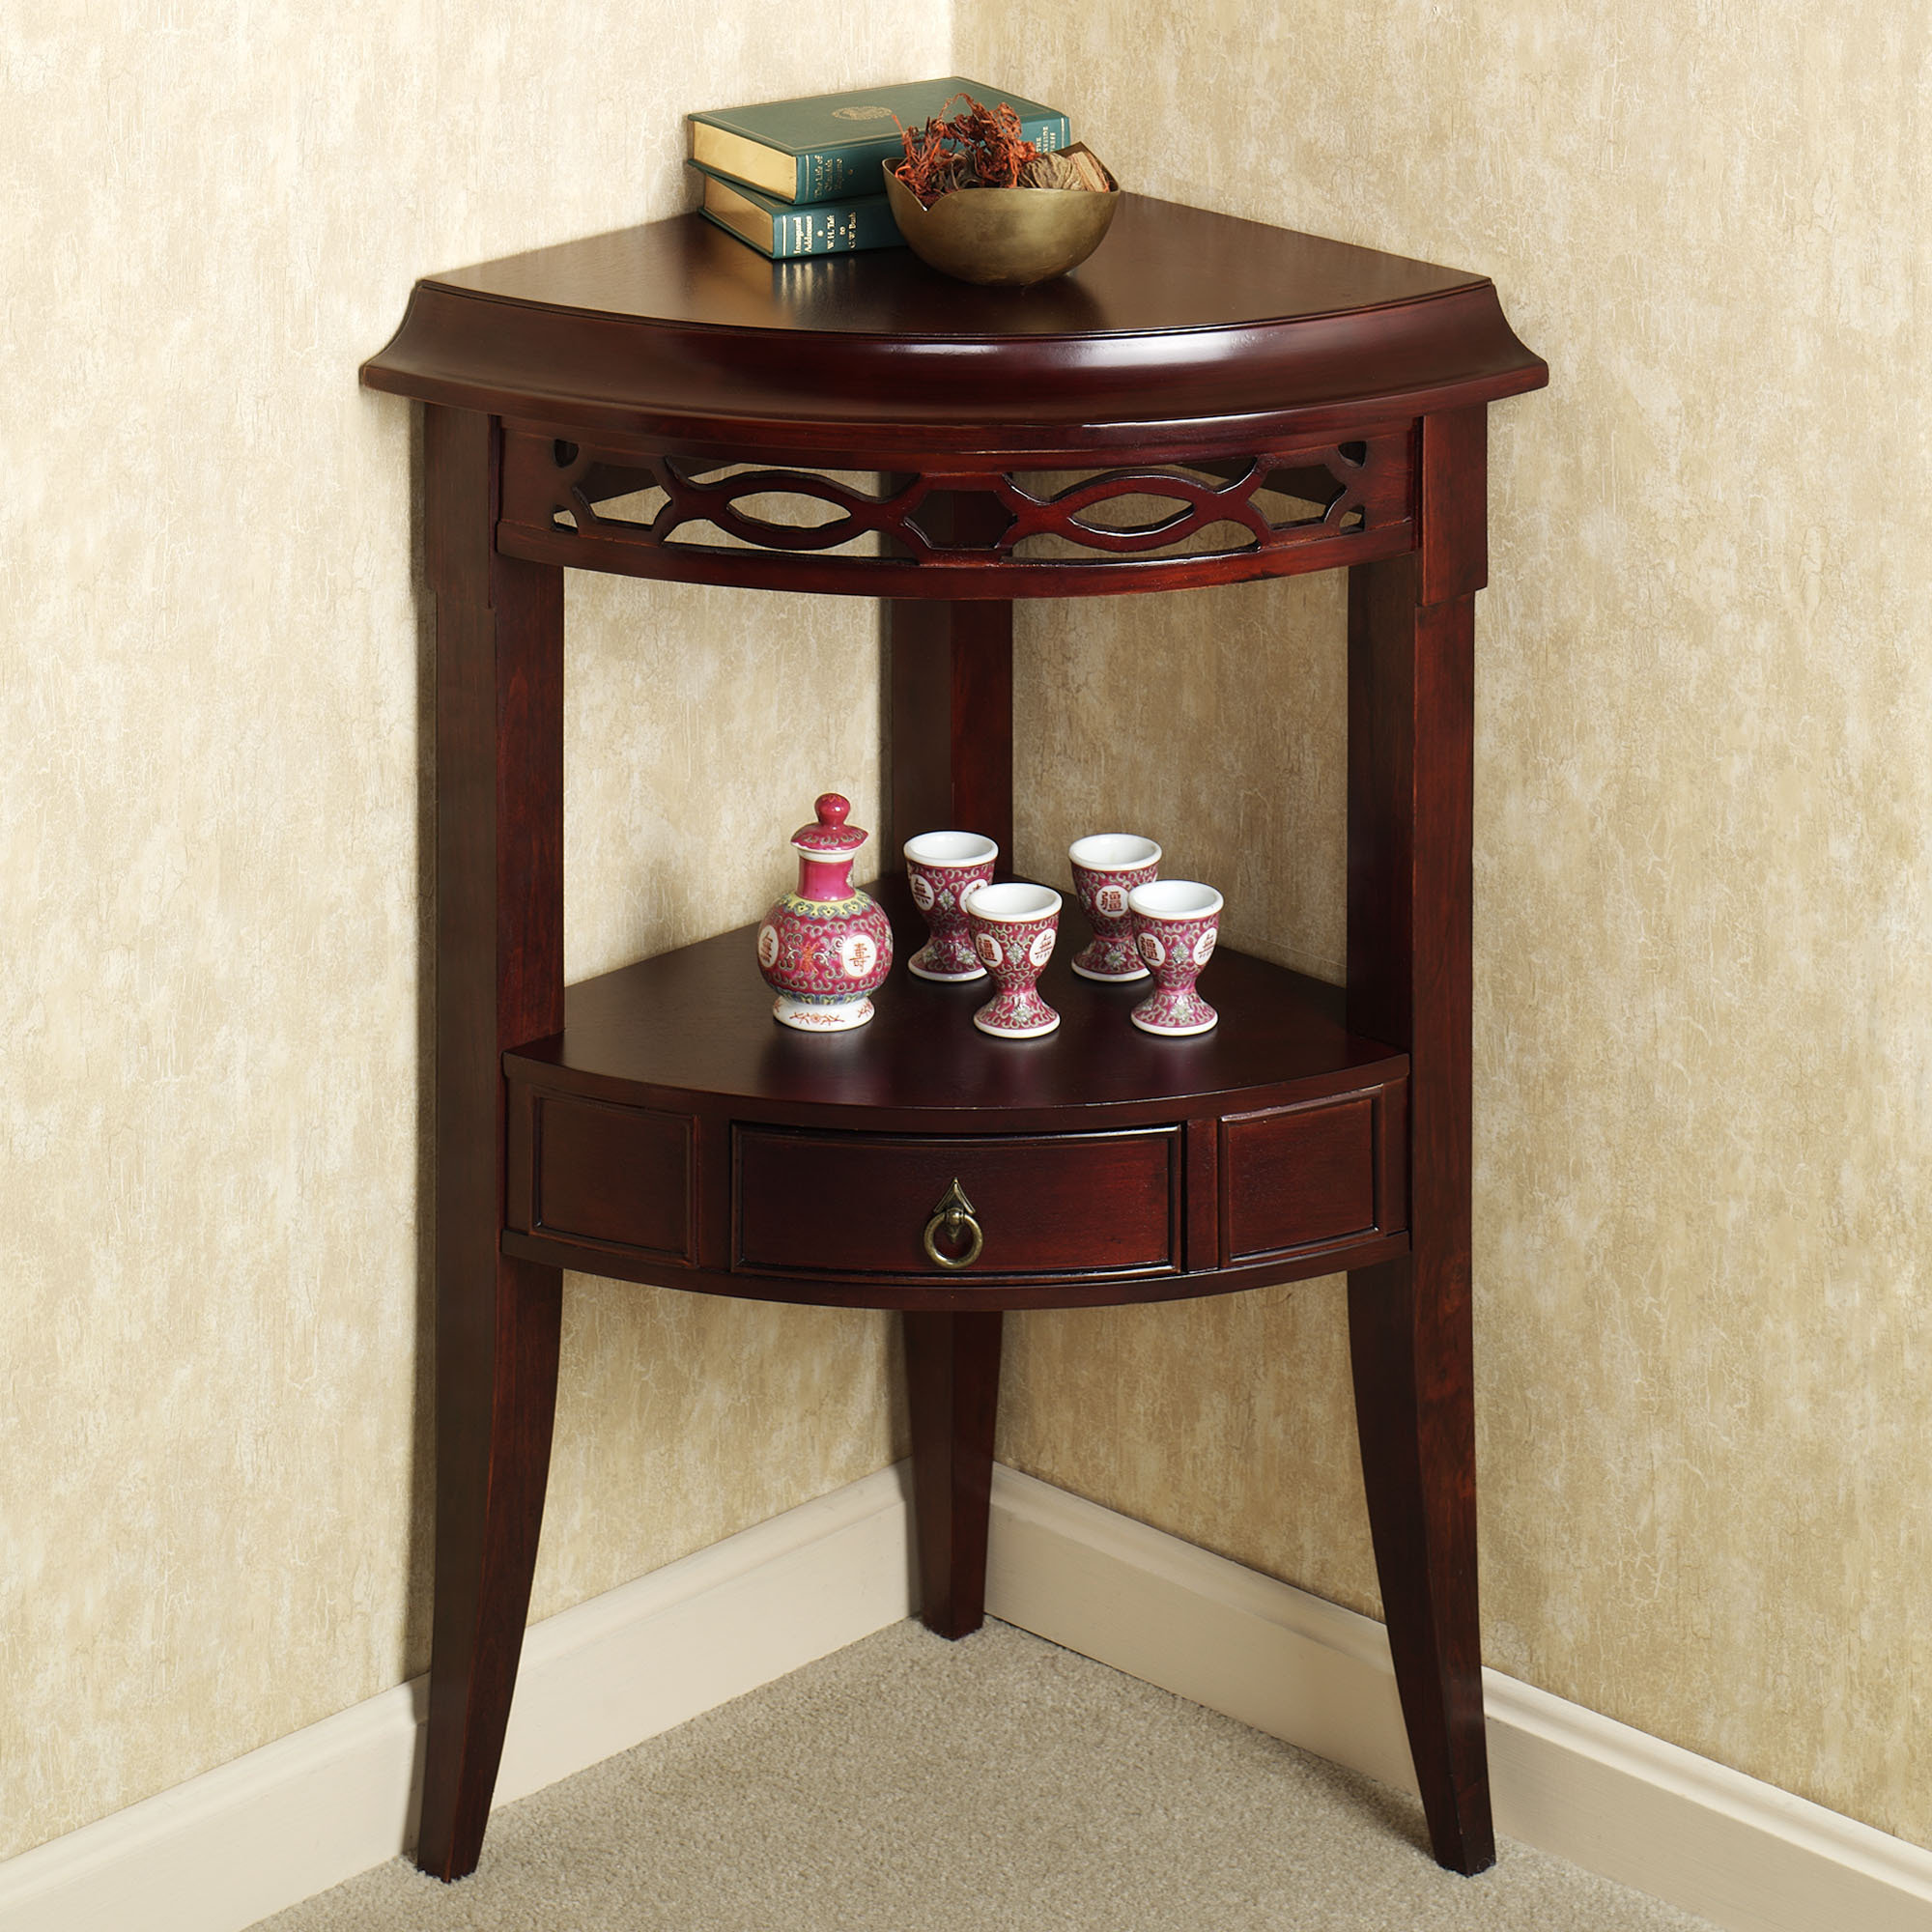 accent furniture storage small corner table classy hallway with drawer white rubber carpet edging trim ultra modern marble pub set antique circular counter height round worldwide